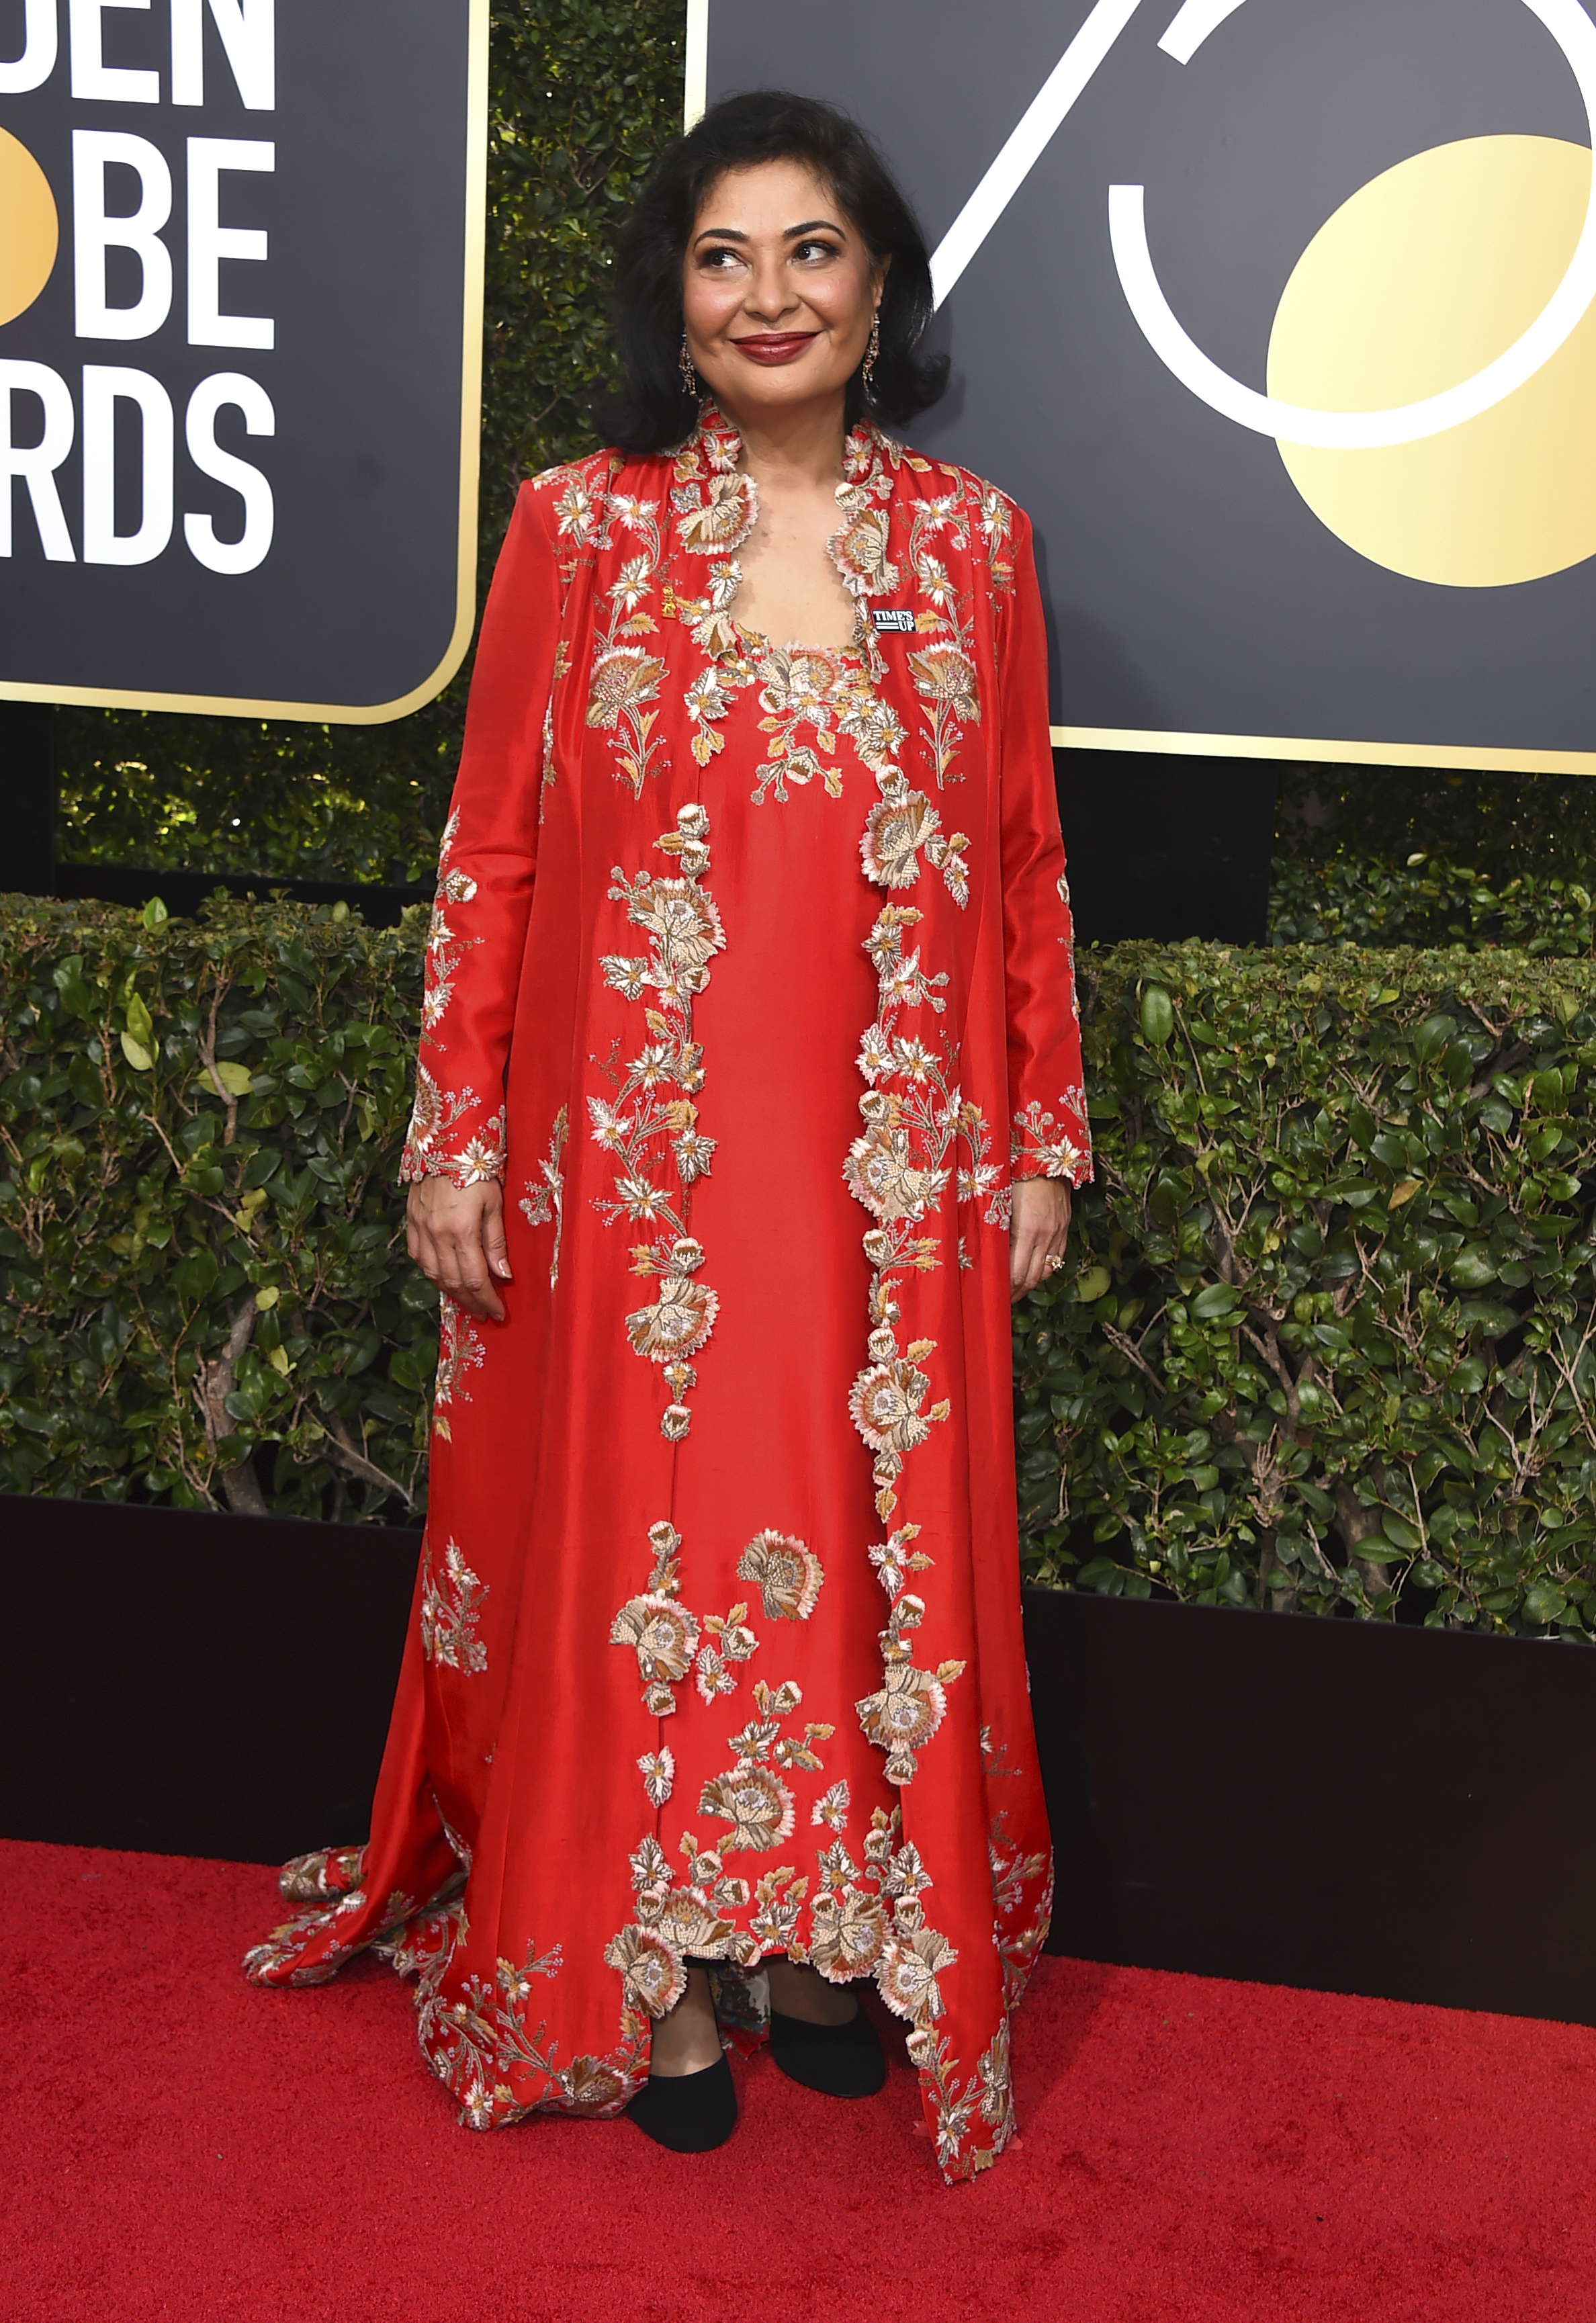 <div class='meta'><div class='origin-logo' data-origin='AP'></div><span class='caption-text' data-credit='Jordan Strauss/Invision/AP'>HFPA President Meher Tatna arrives at the 75th annual Golden Globe Awards at the Beverly Hilton Hotel on Sunday, Jan. 7, 2018, in Beverly Hills, Calif.</span></div>